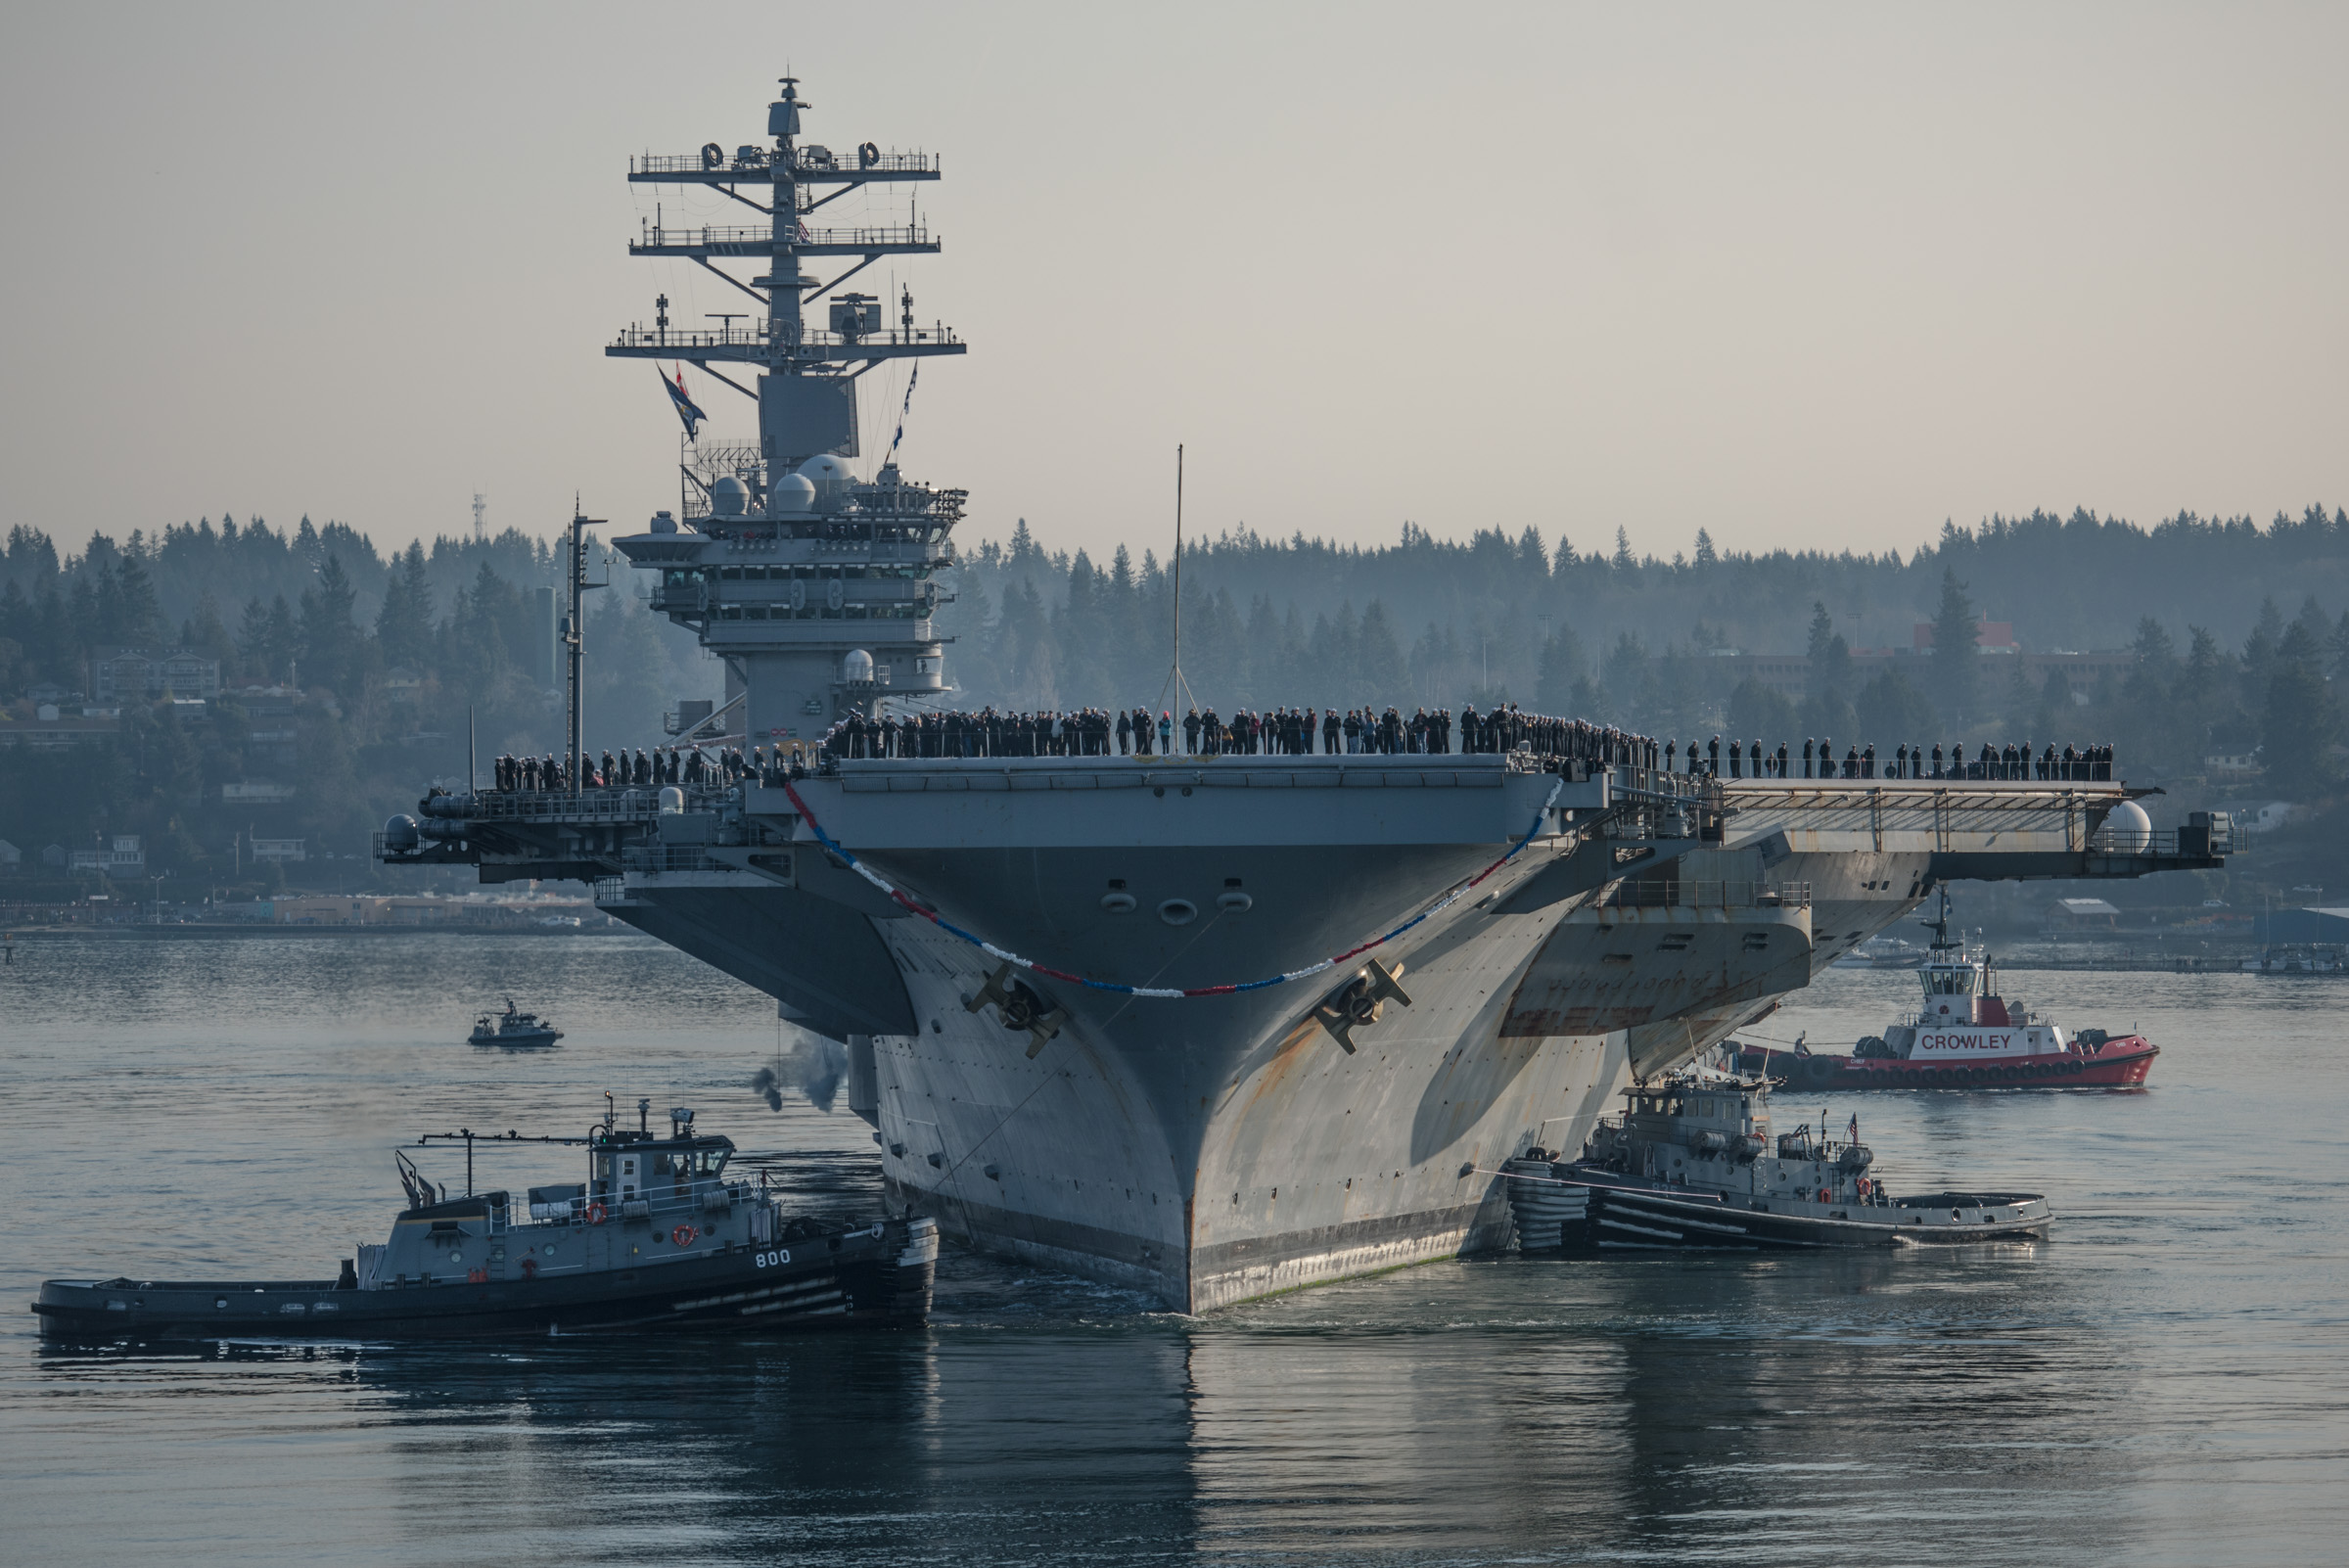 The carrier Nimitz returns to its homeport of Bremerton, Wash., after a six-month deployment. (MC3 Dakota Rayburn/Navy)